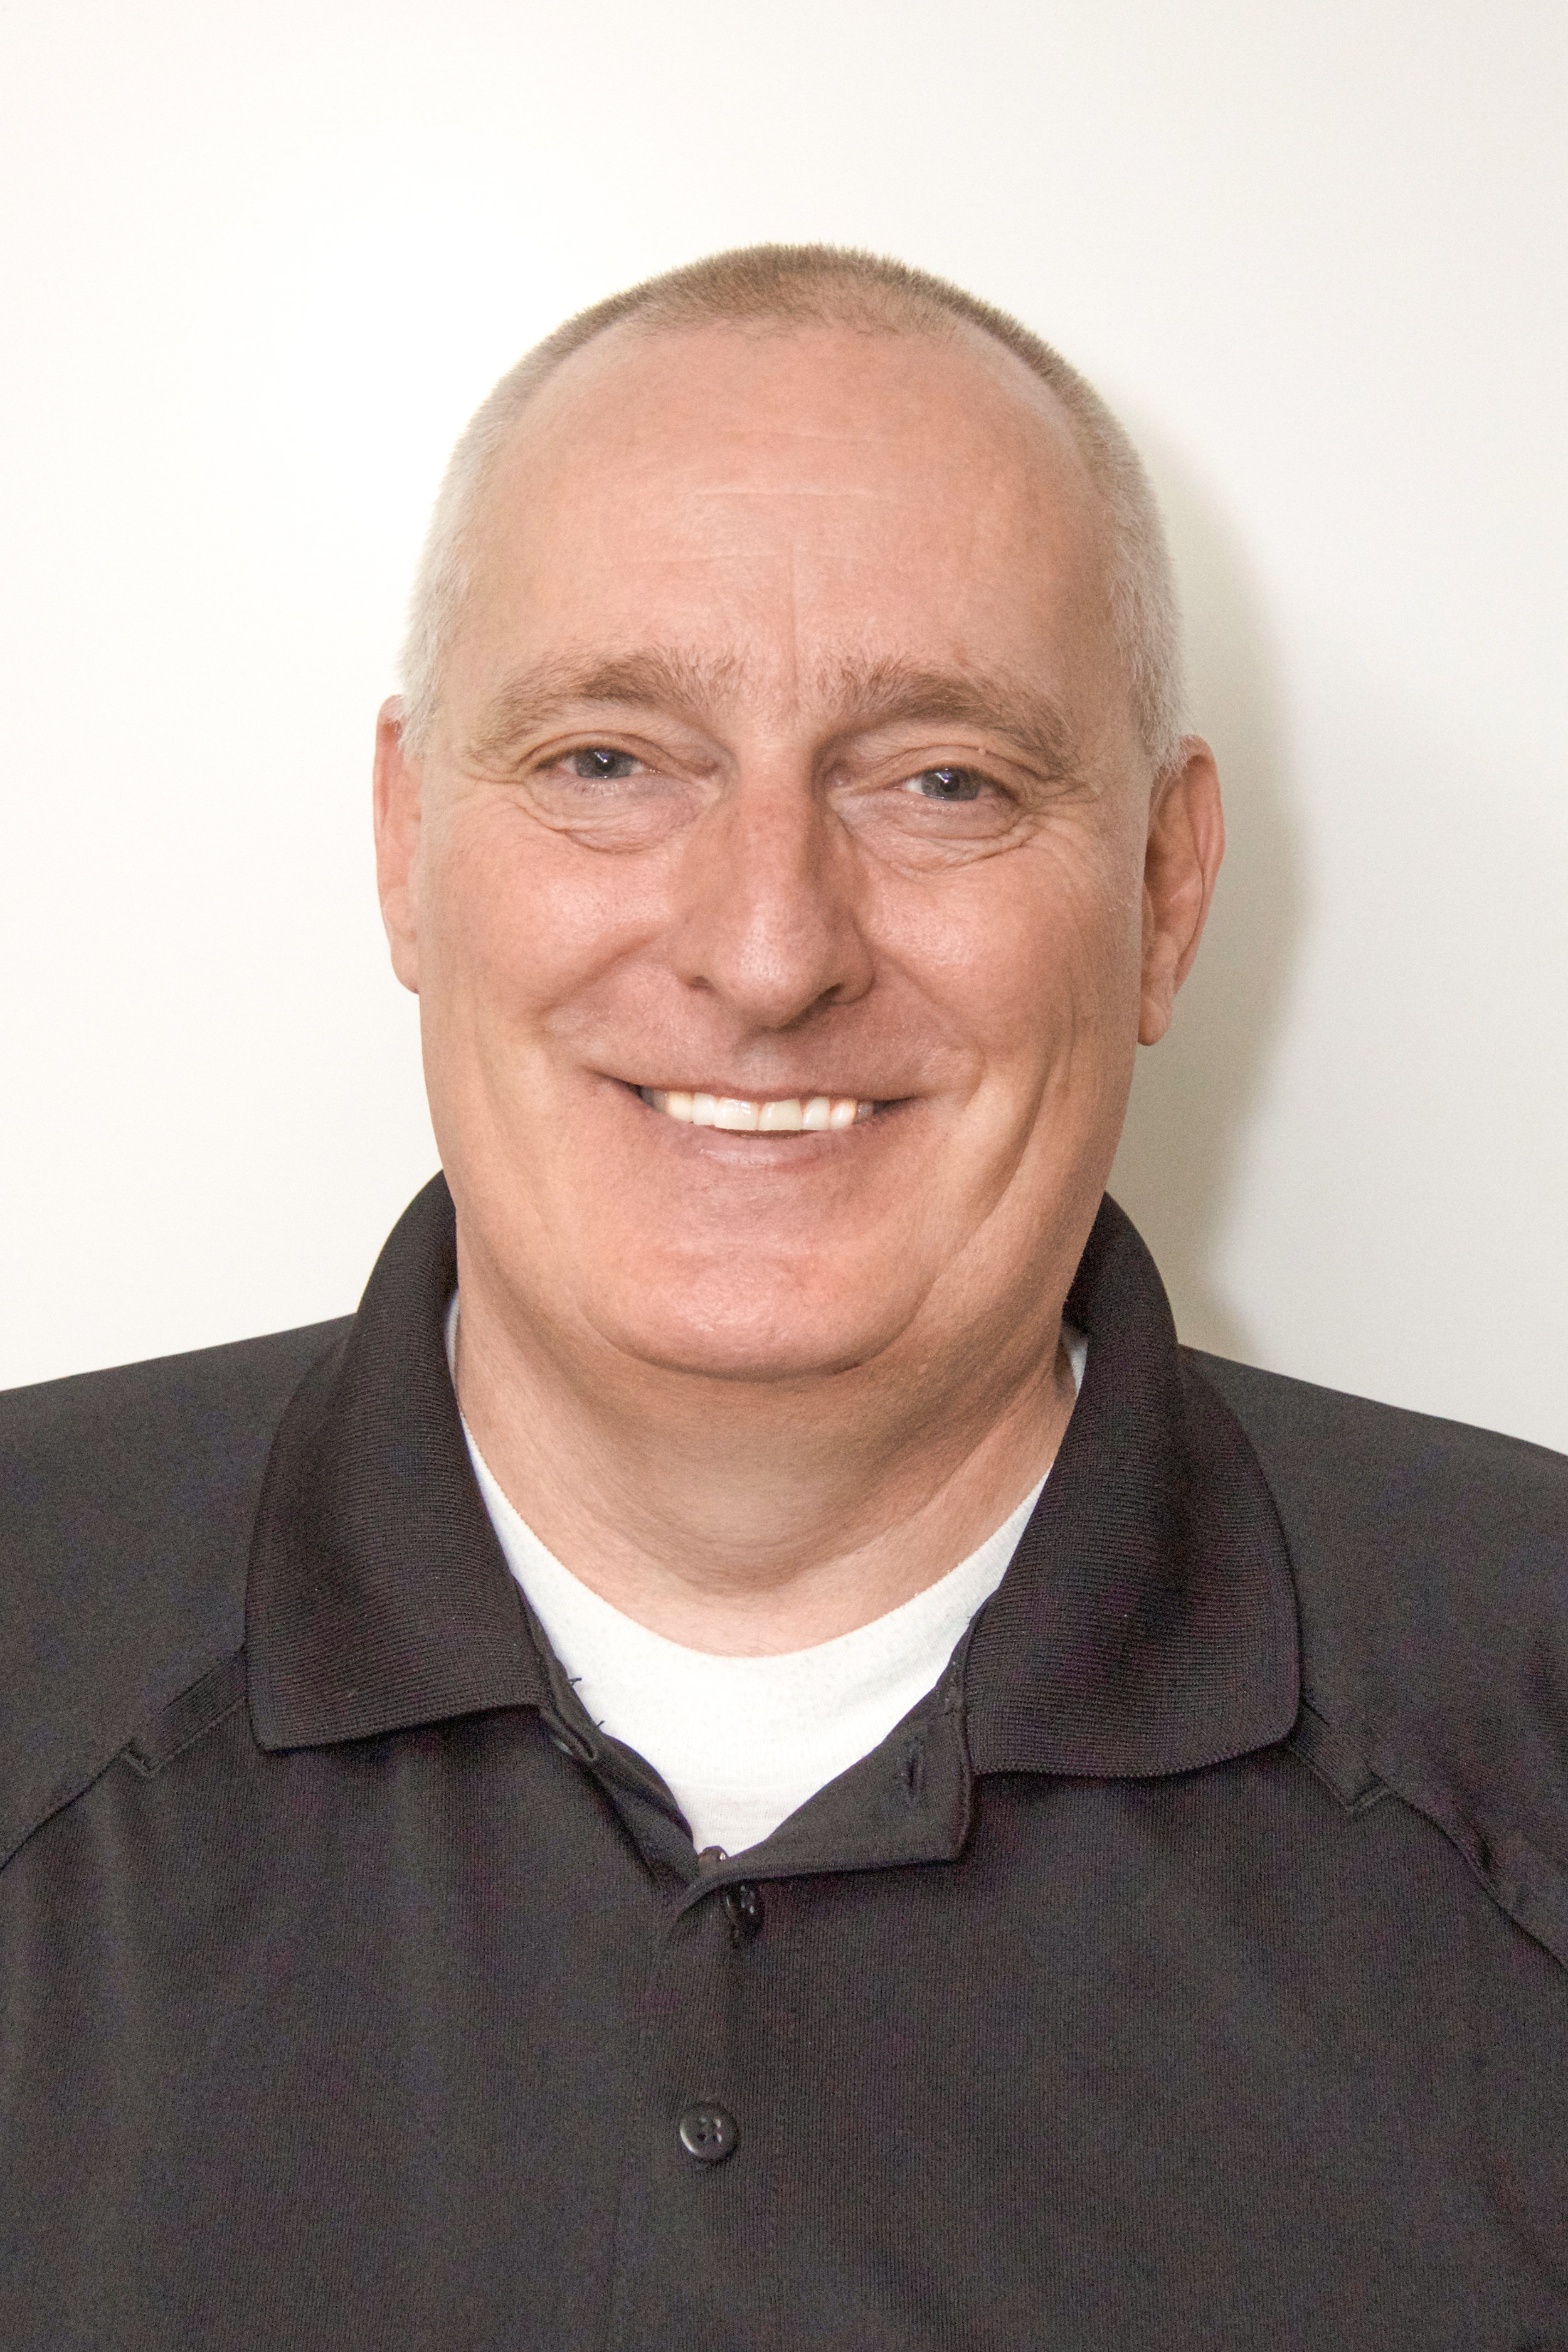 Town of Cardston Animal Control Officer and Bylaw Liaison, Mr. Malcolm Hutchinsin